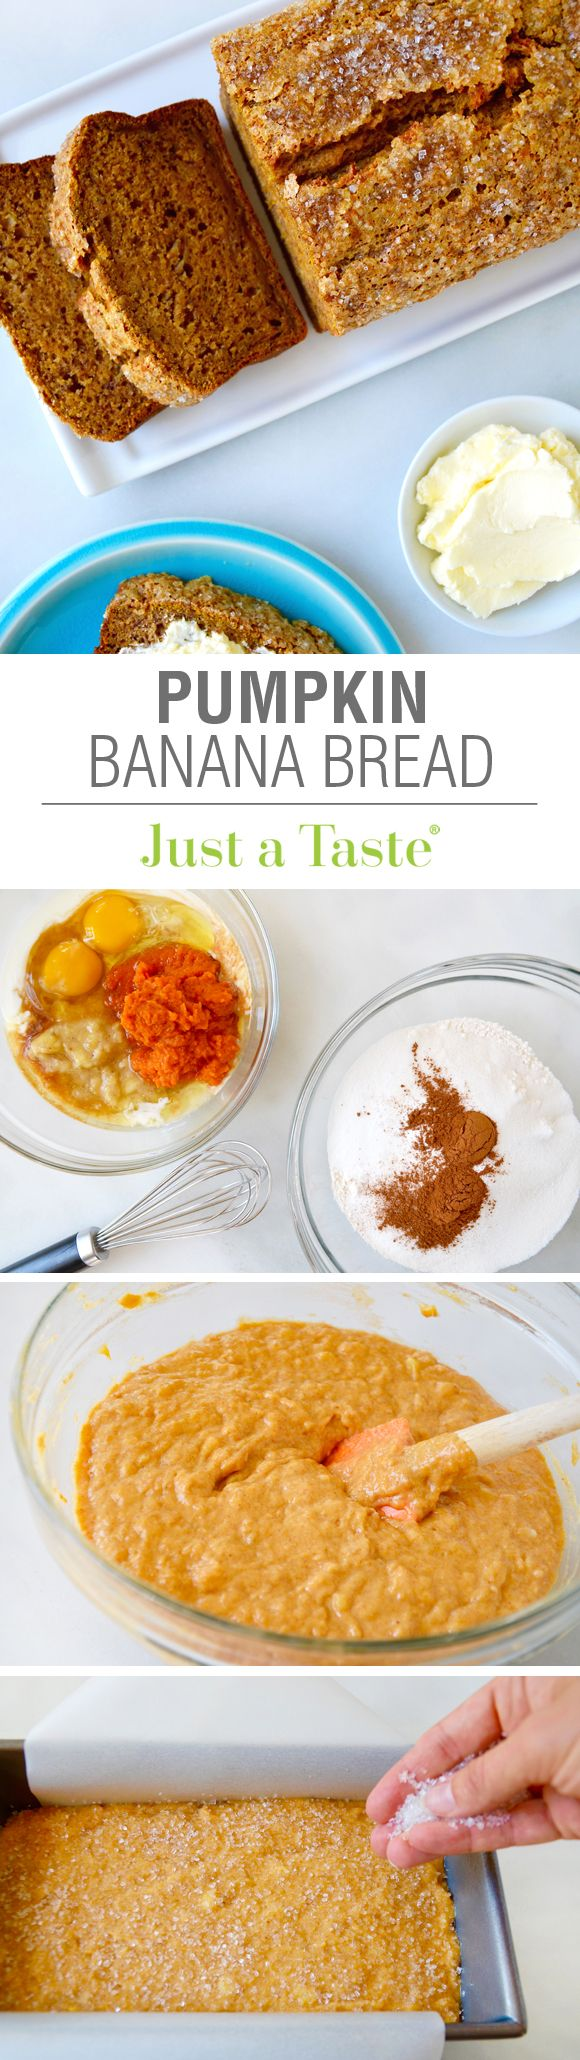 Pumpkin Banana Bread #recipe from justataste.com